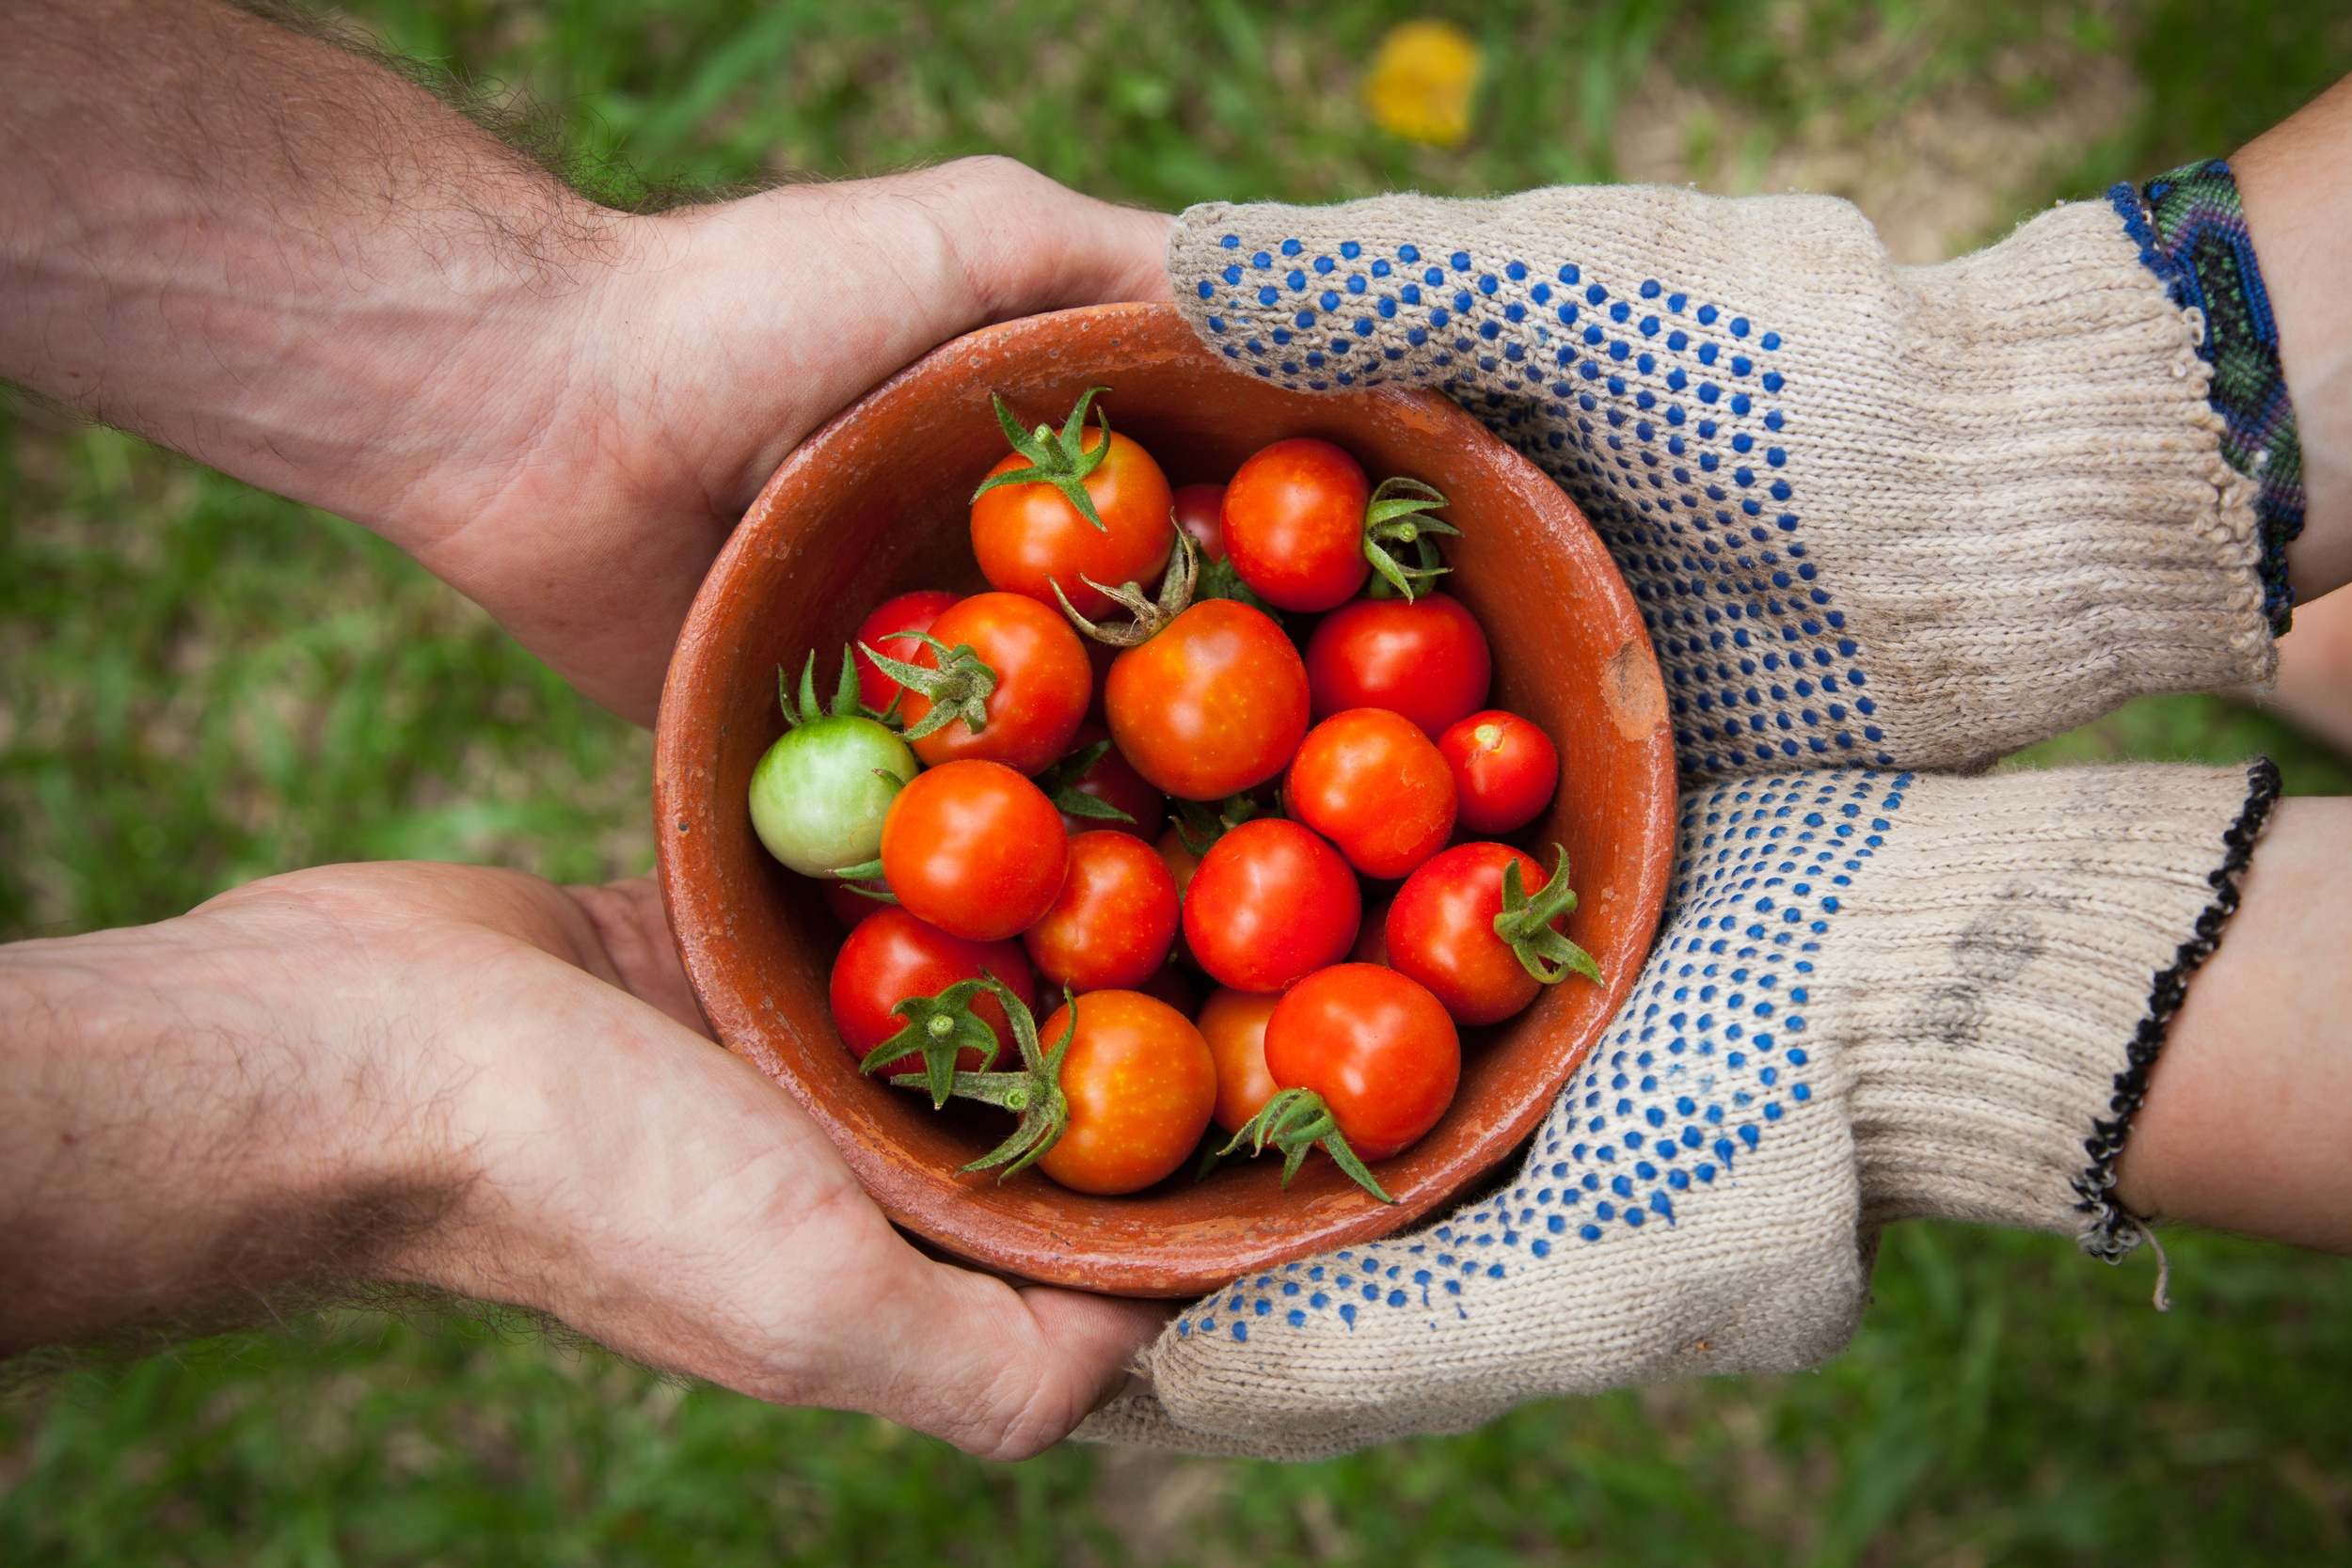 Whether you're sharing tomatoes or sharing free stock images, it's always a good idea to indicate where the item came from. (Photo by  Elaine Casap )